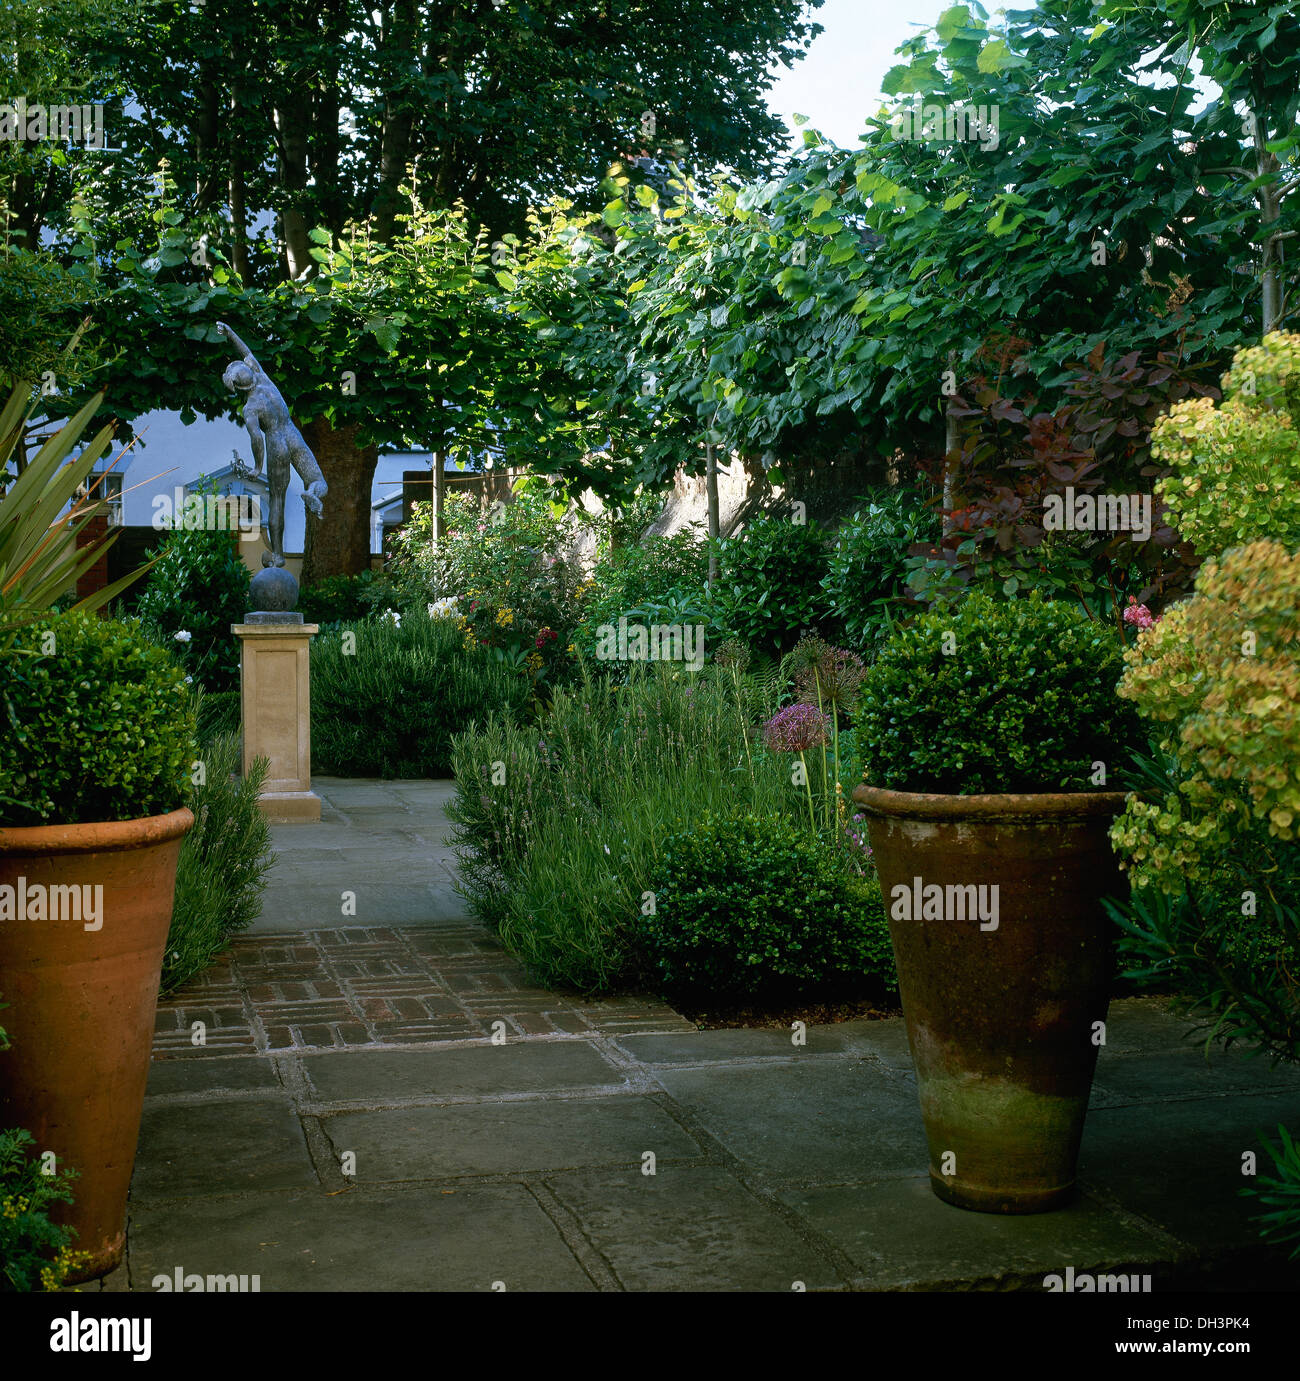 Clipped Box In Large Terracotta Pots On Paving In Lush Green Garden With  Small Trees In